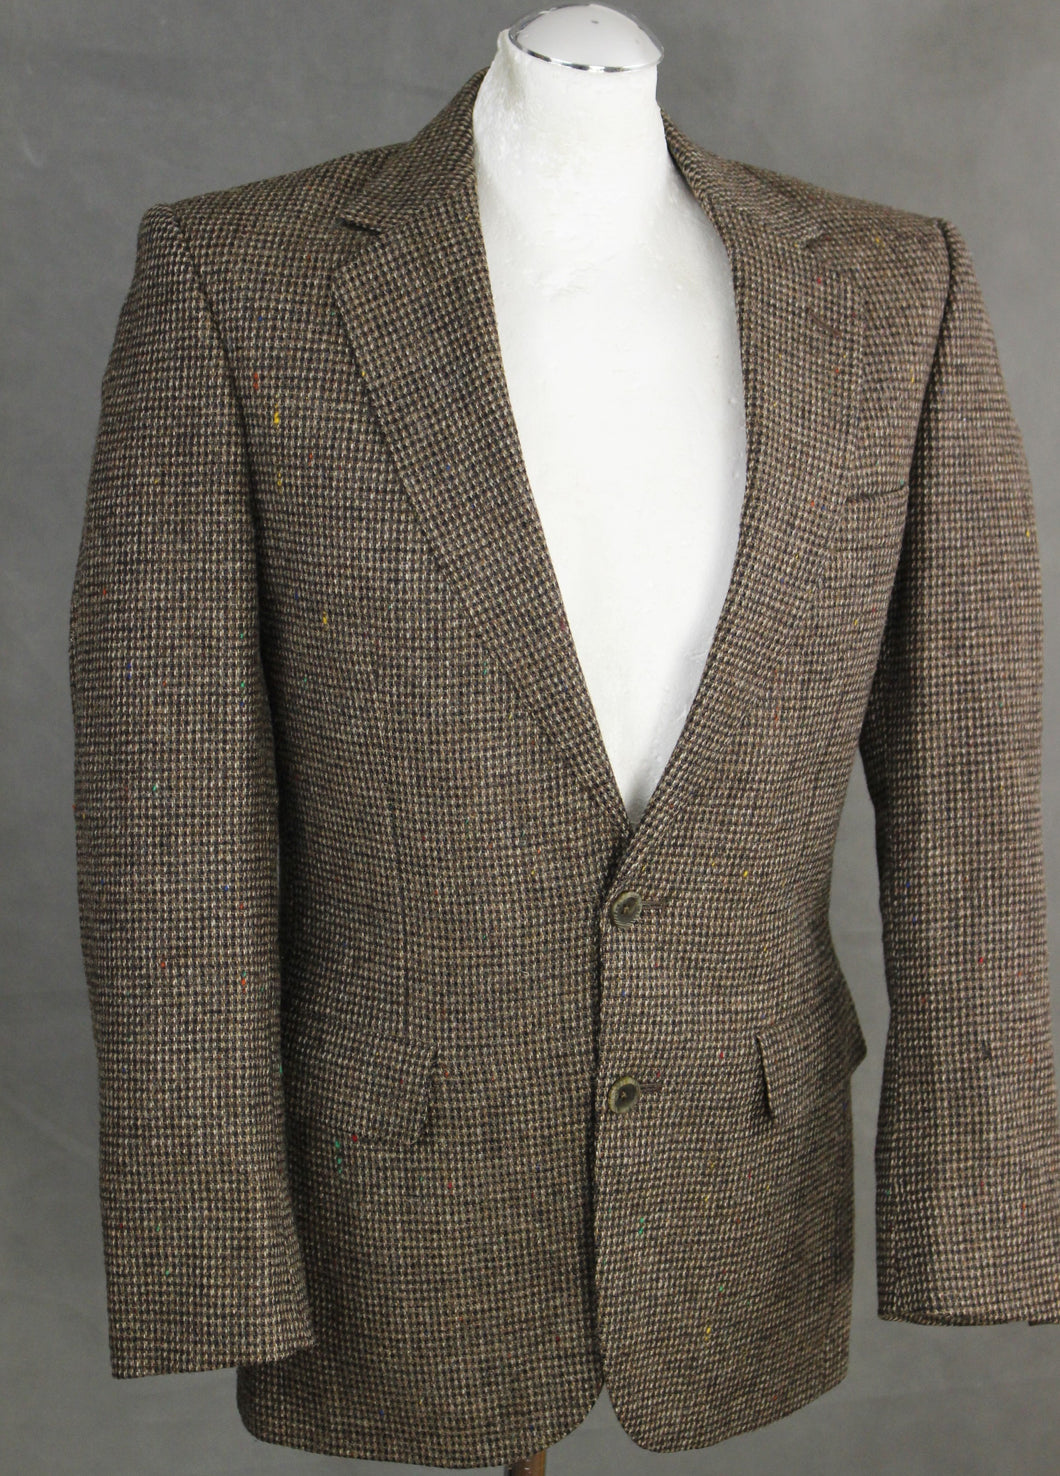 AQUASCUTUM Woven 100% Wool BLAZER / TAILORED JACKET Size 36 REG - 36